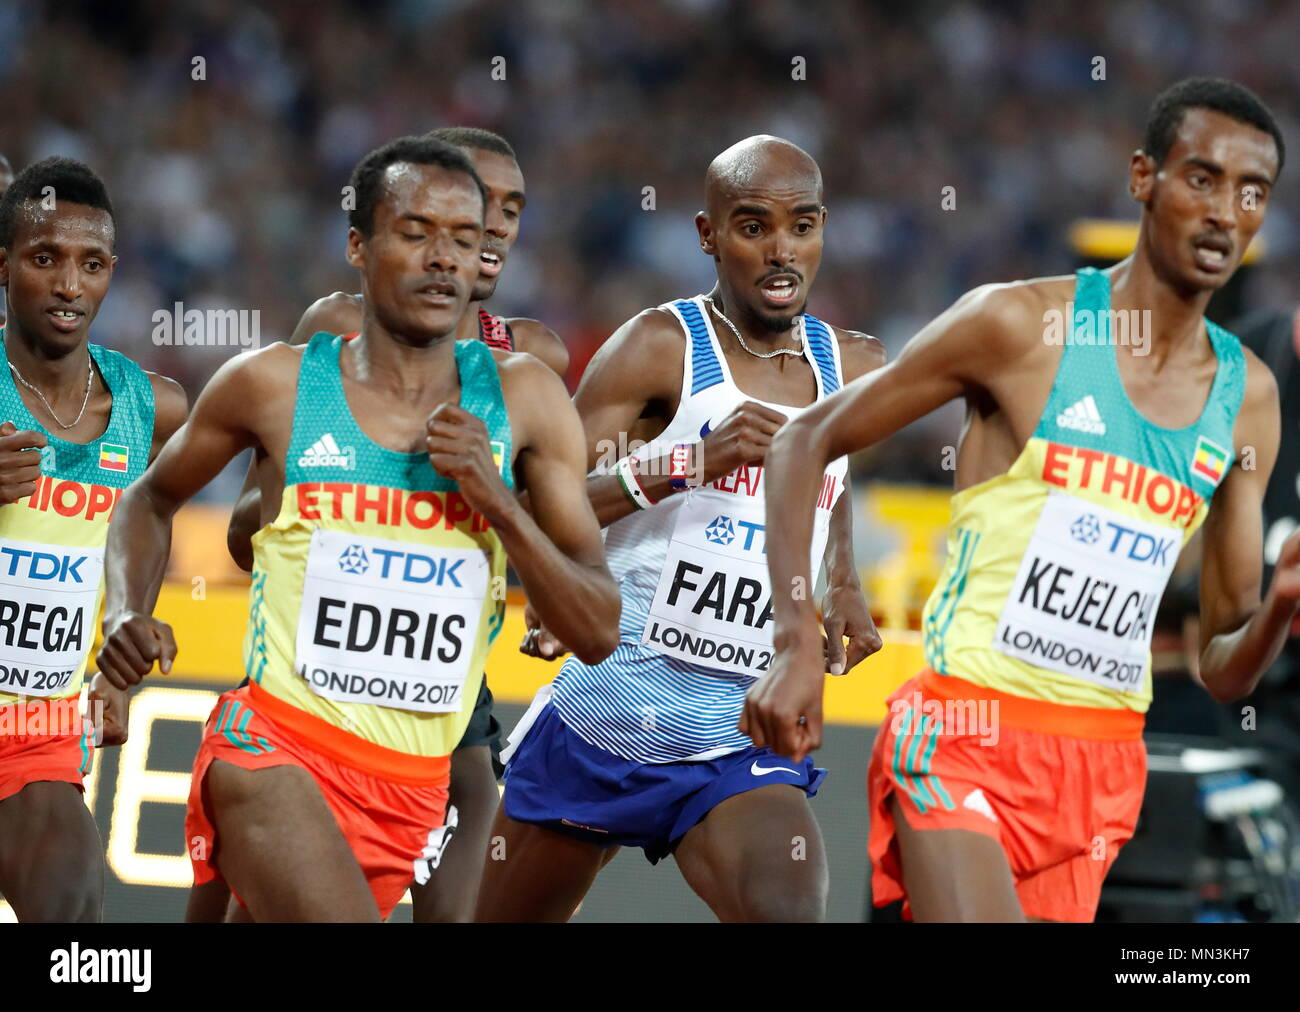 LONDON, ENGLAND - AUGUST 12: Muktar Edris of Ethiopia passes Mo Farrah of Great Britain in the Men's 5000 Metres Final during day nine of the 16th IAAF World Athletics Championships London 2017 at The London Stadium on August 12, 2017 in London, United Kingdom --- Image by © Paul Cunningham - Stock Image